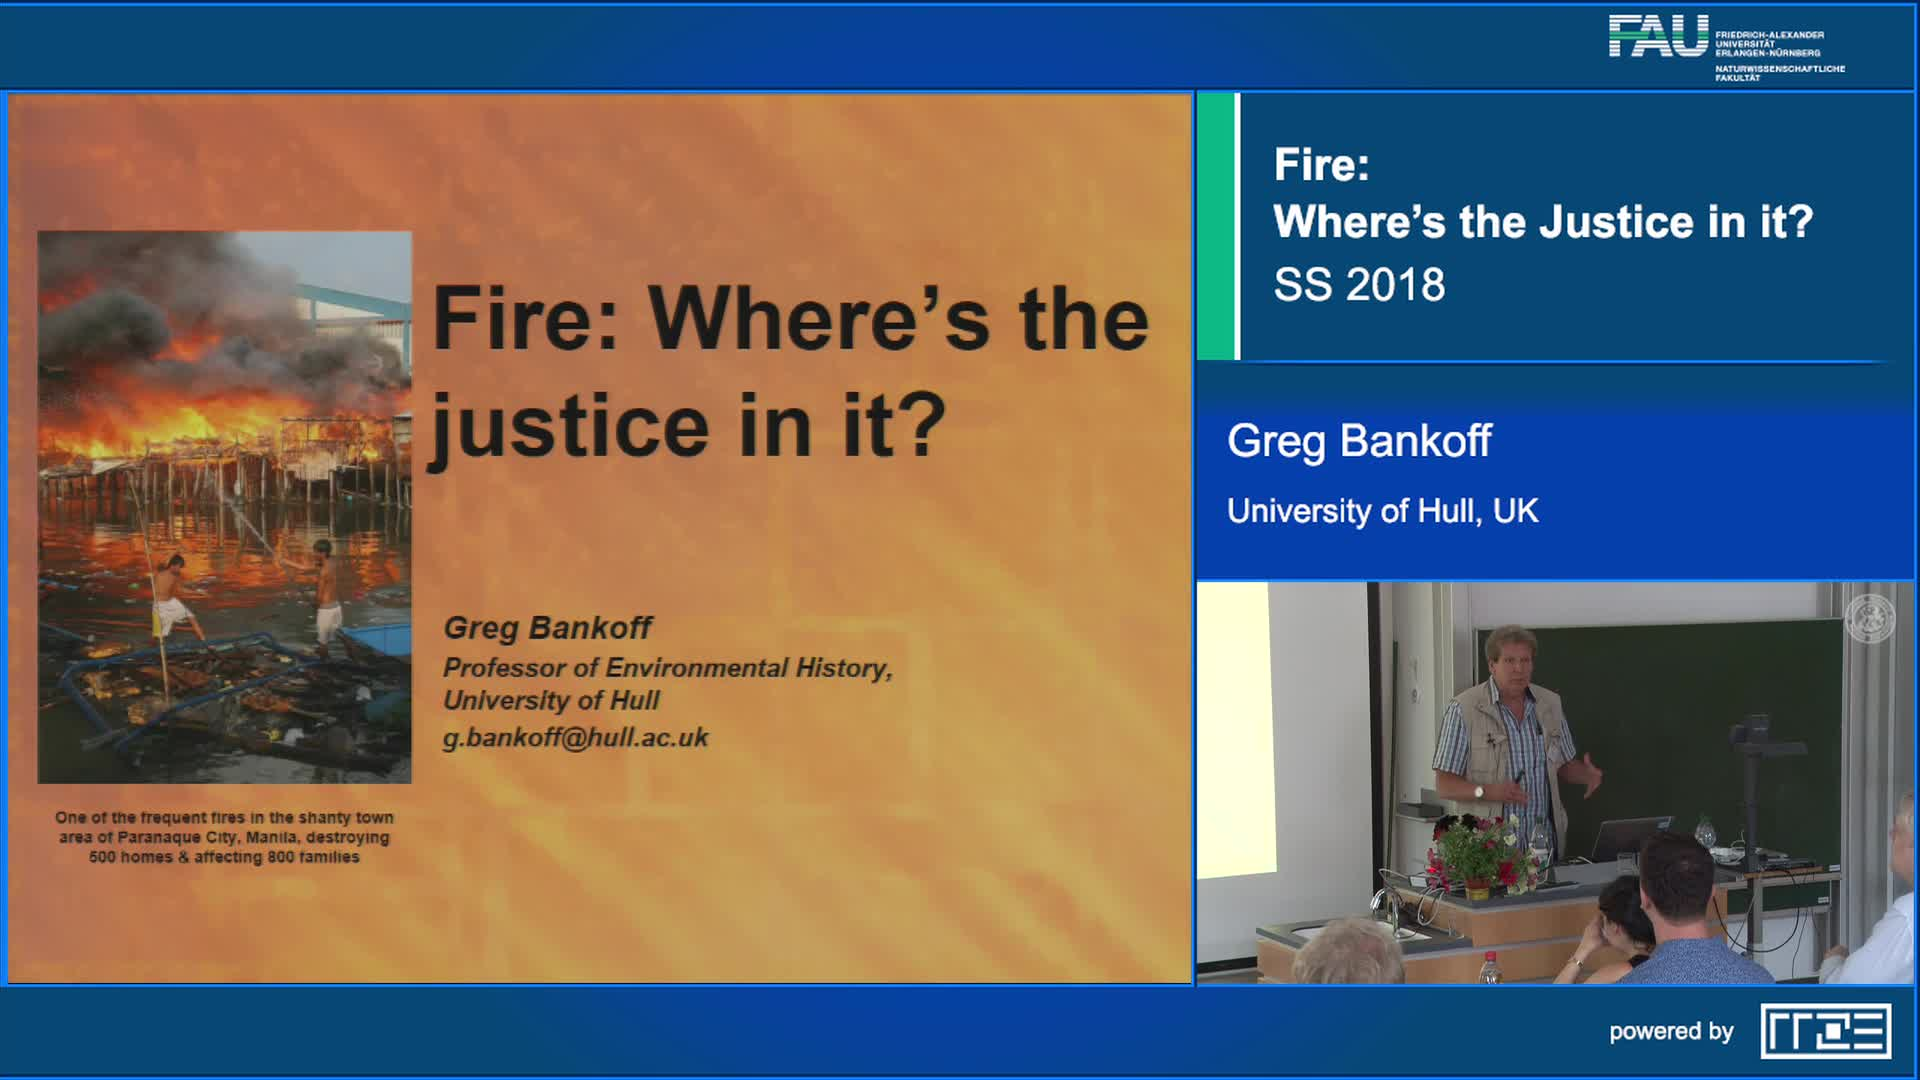 Fire: Where's the Justice in it? preview image